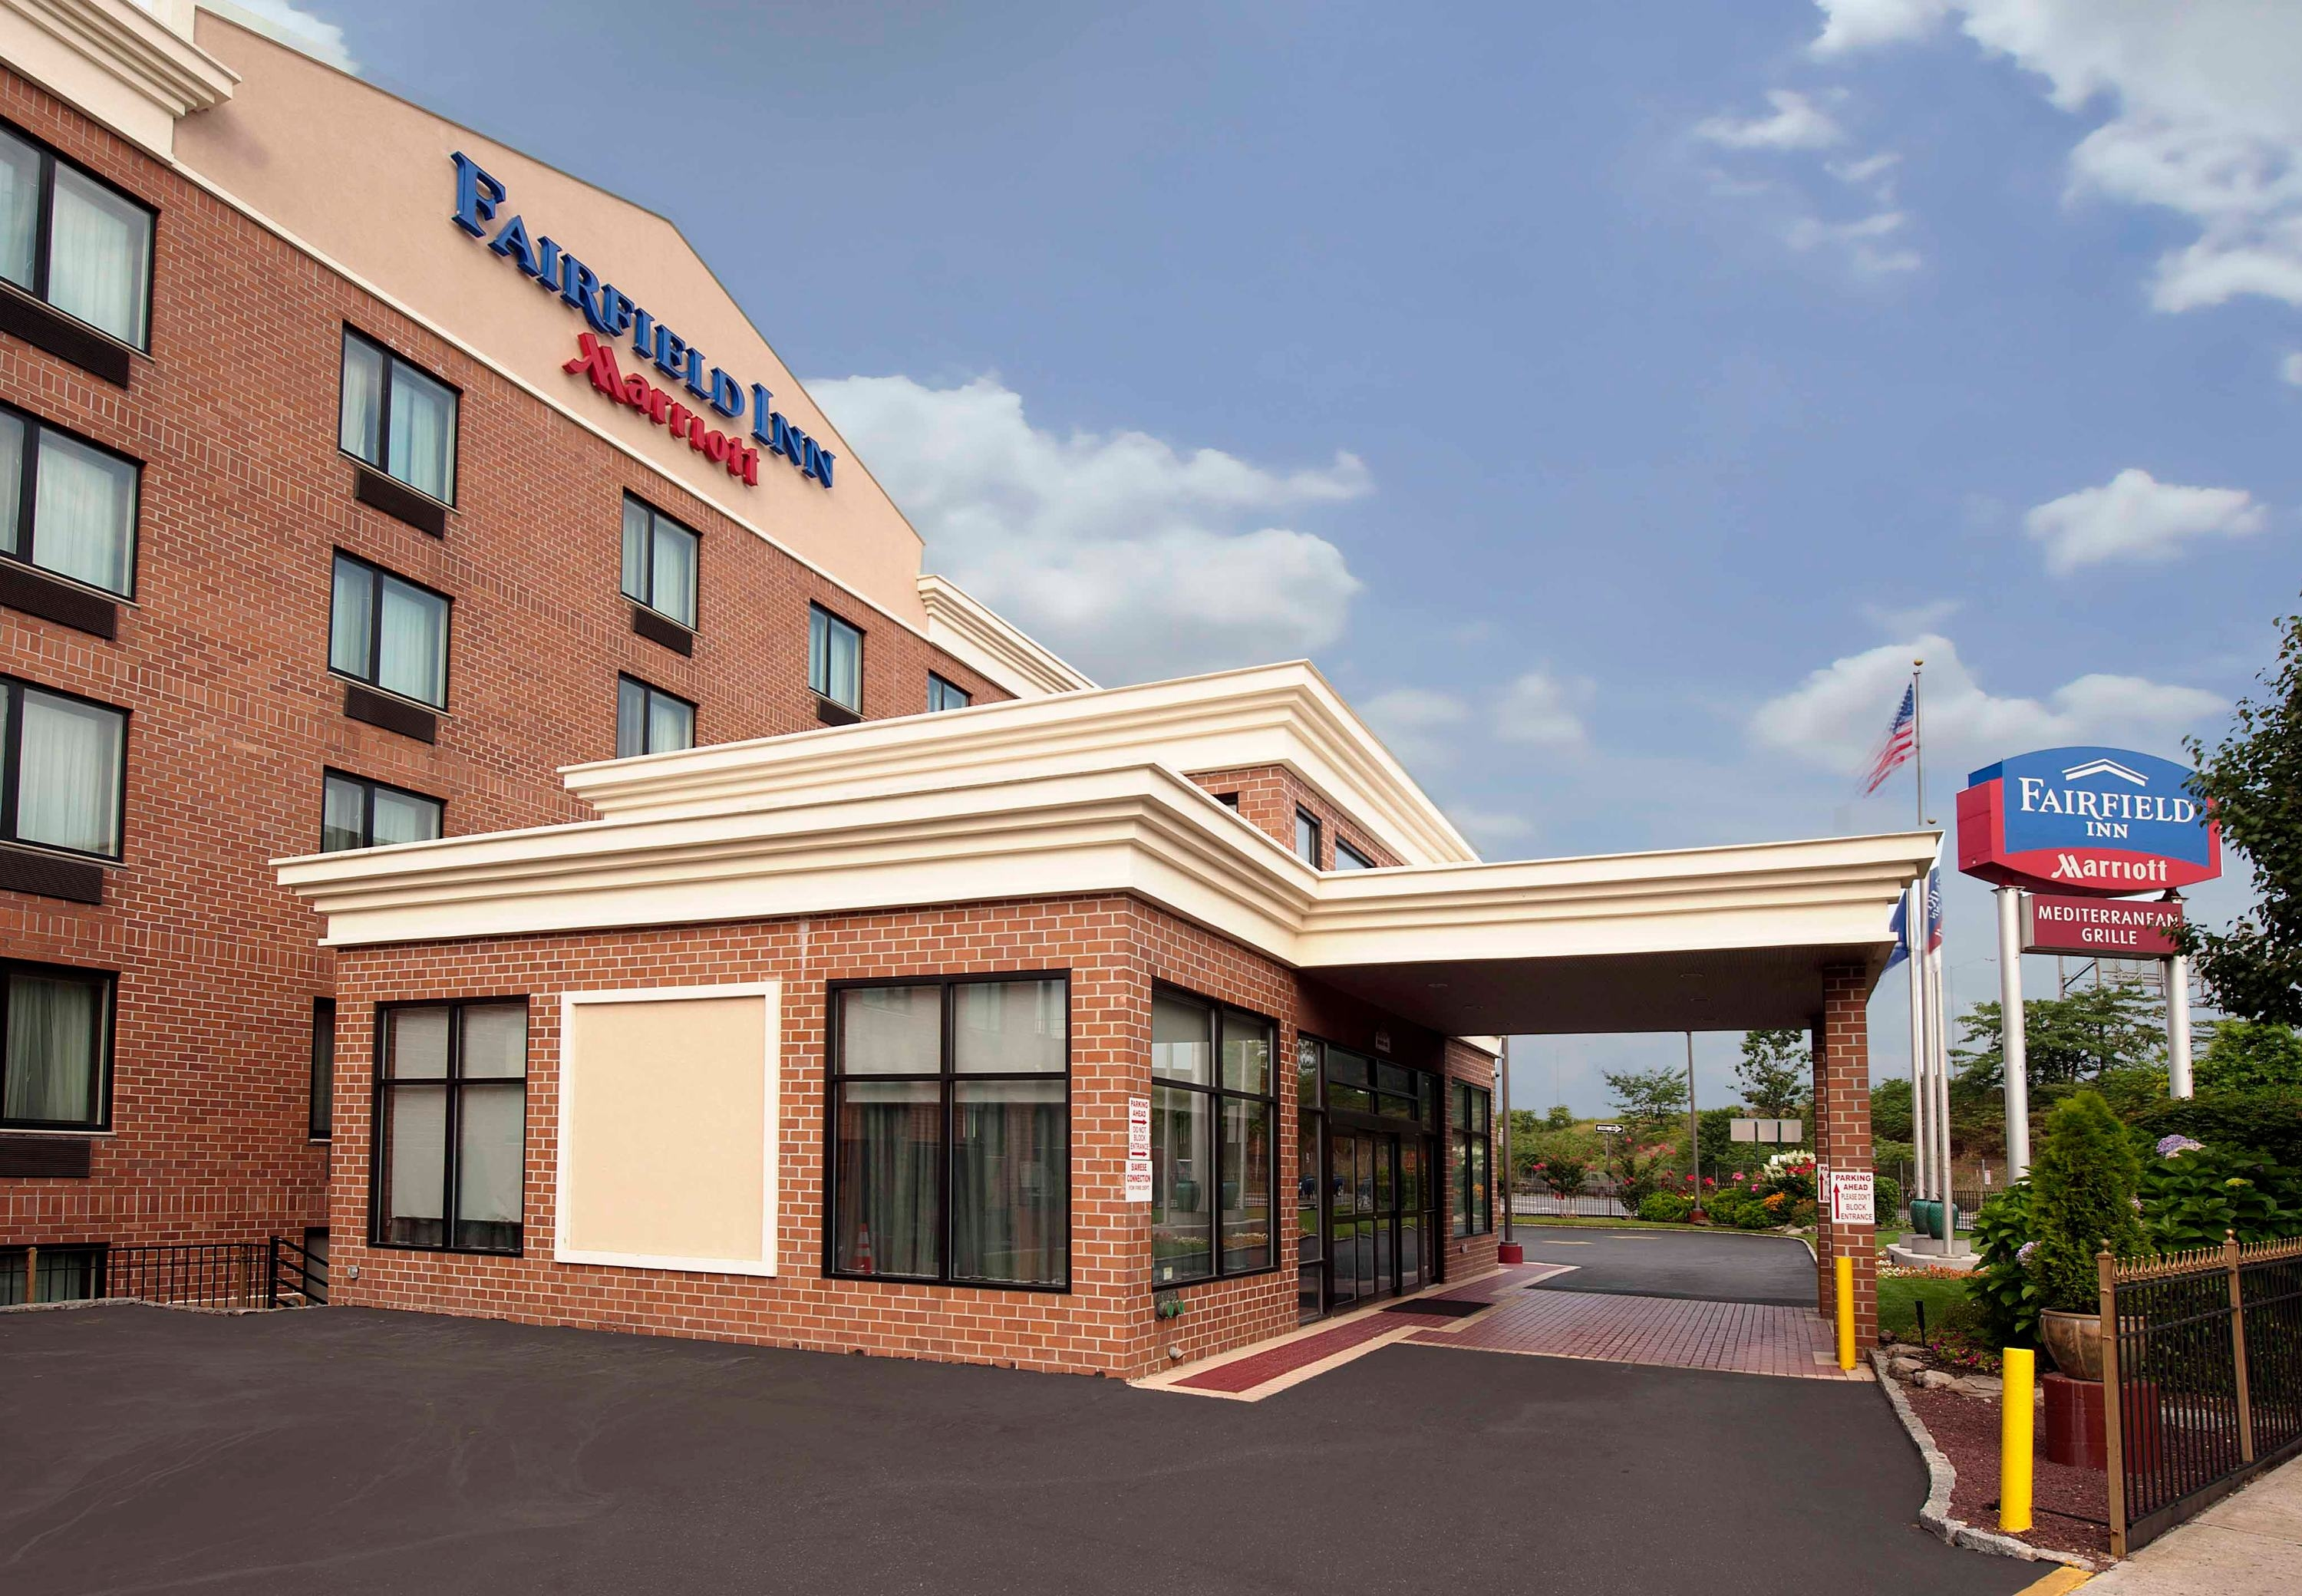 Fairfield Inn by Marriott New York JFK Airport 156-08 Rockaway Blvd. (718) 977-3300